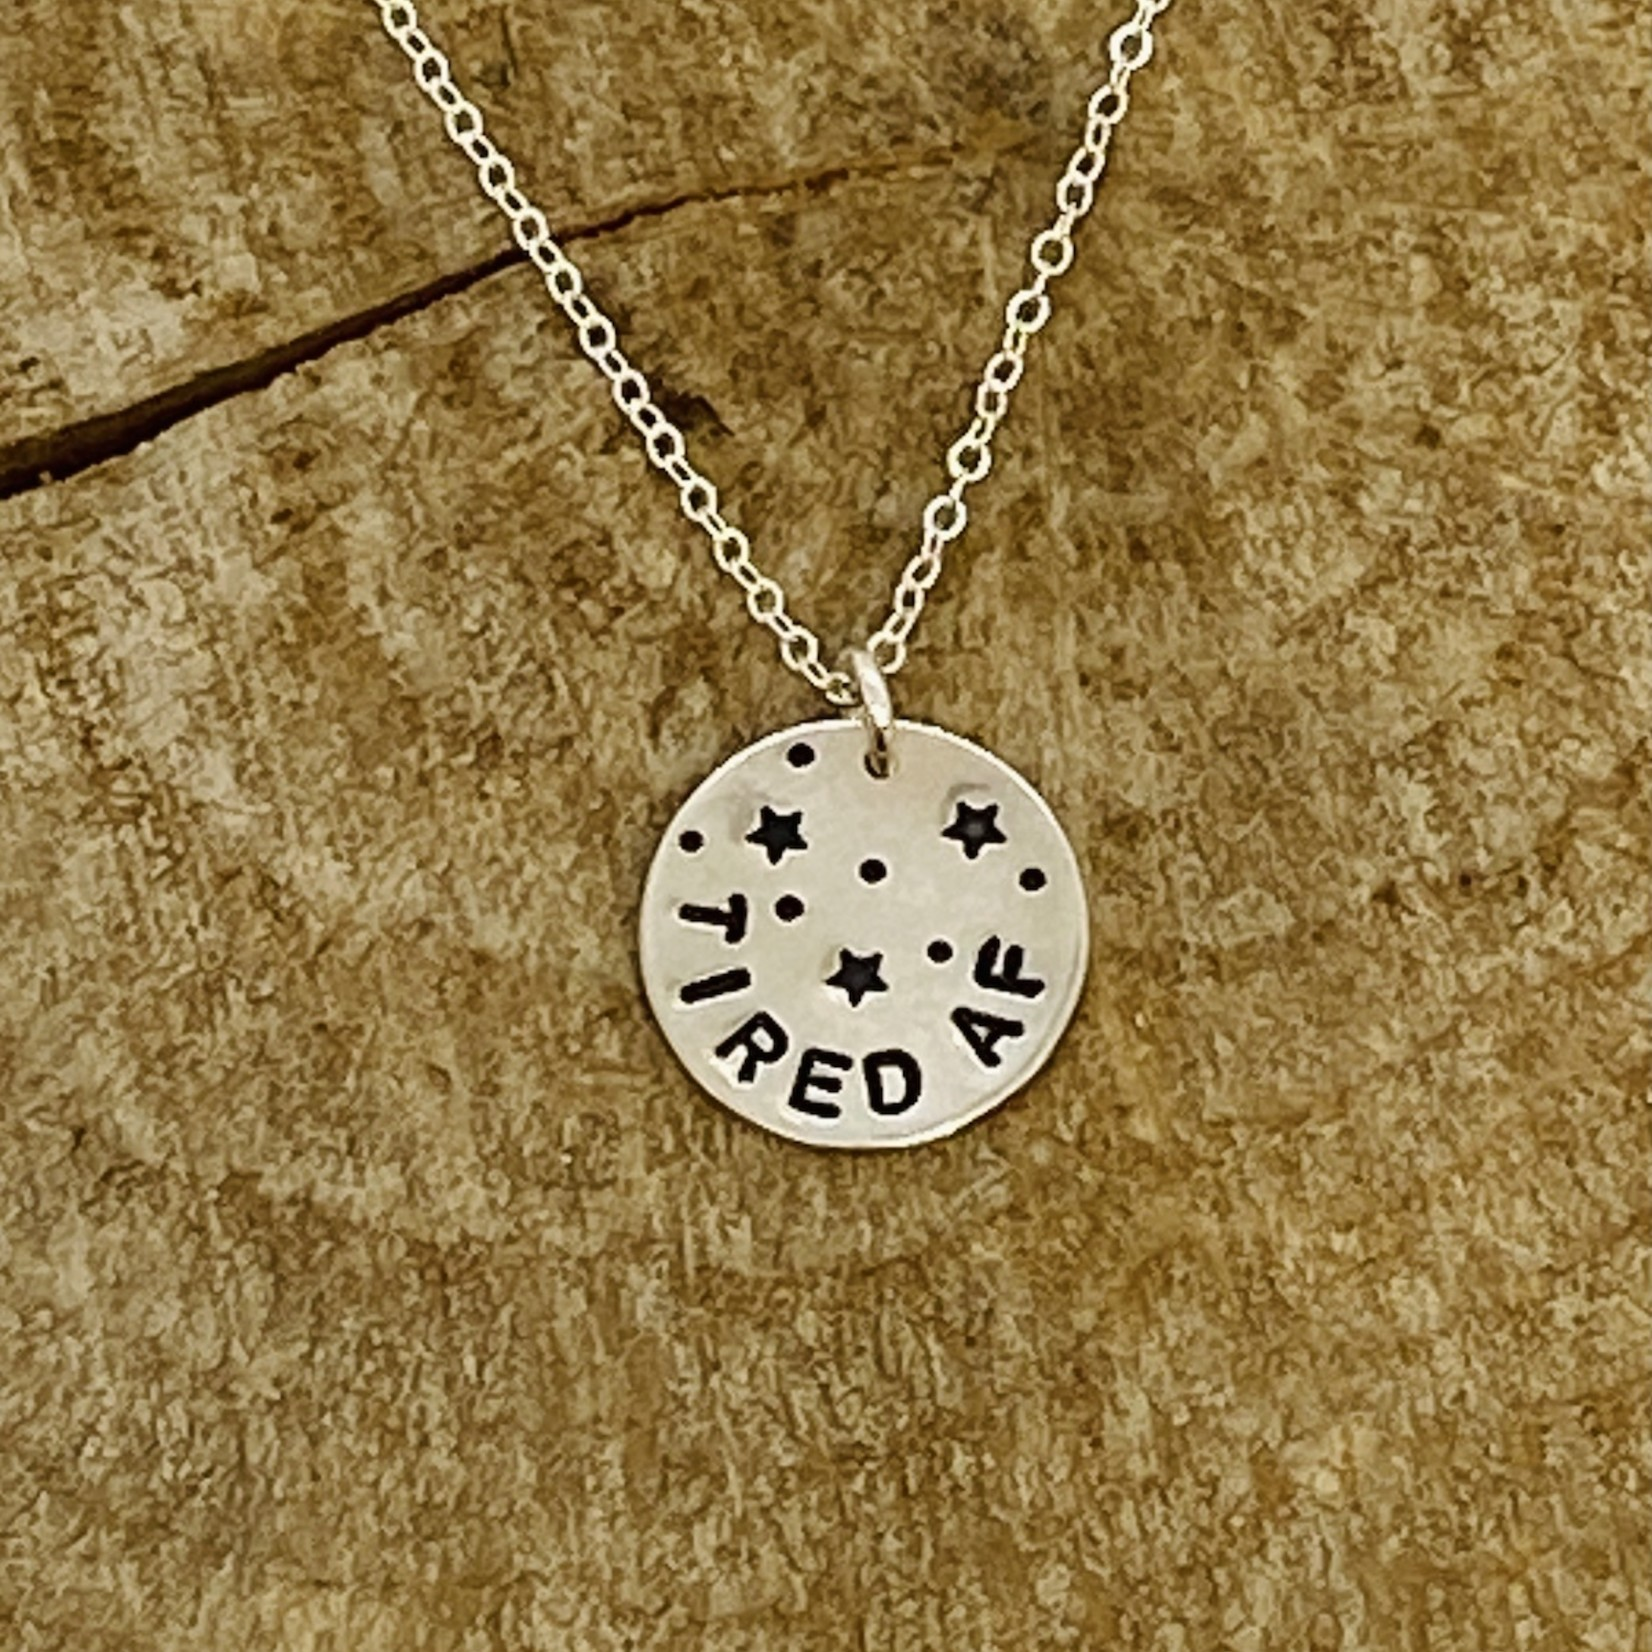 Stamped Silver Statement Necklace